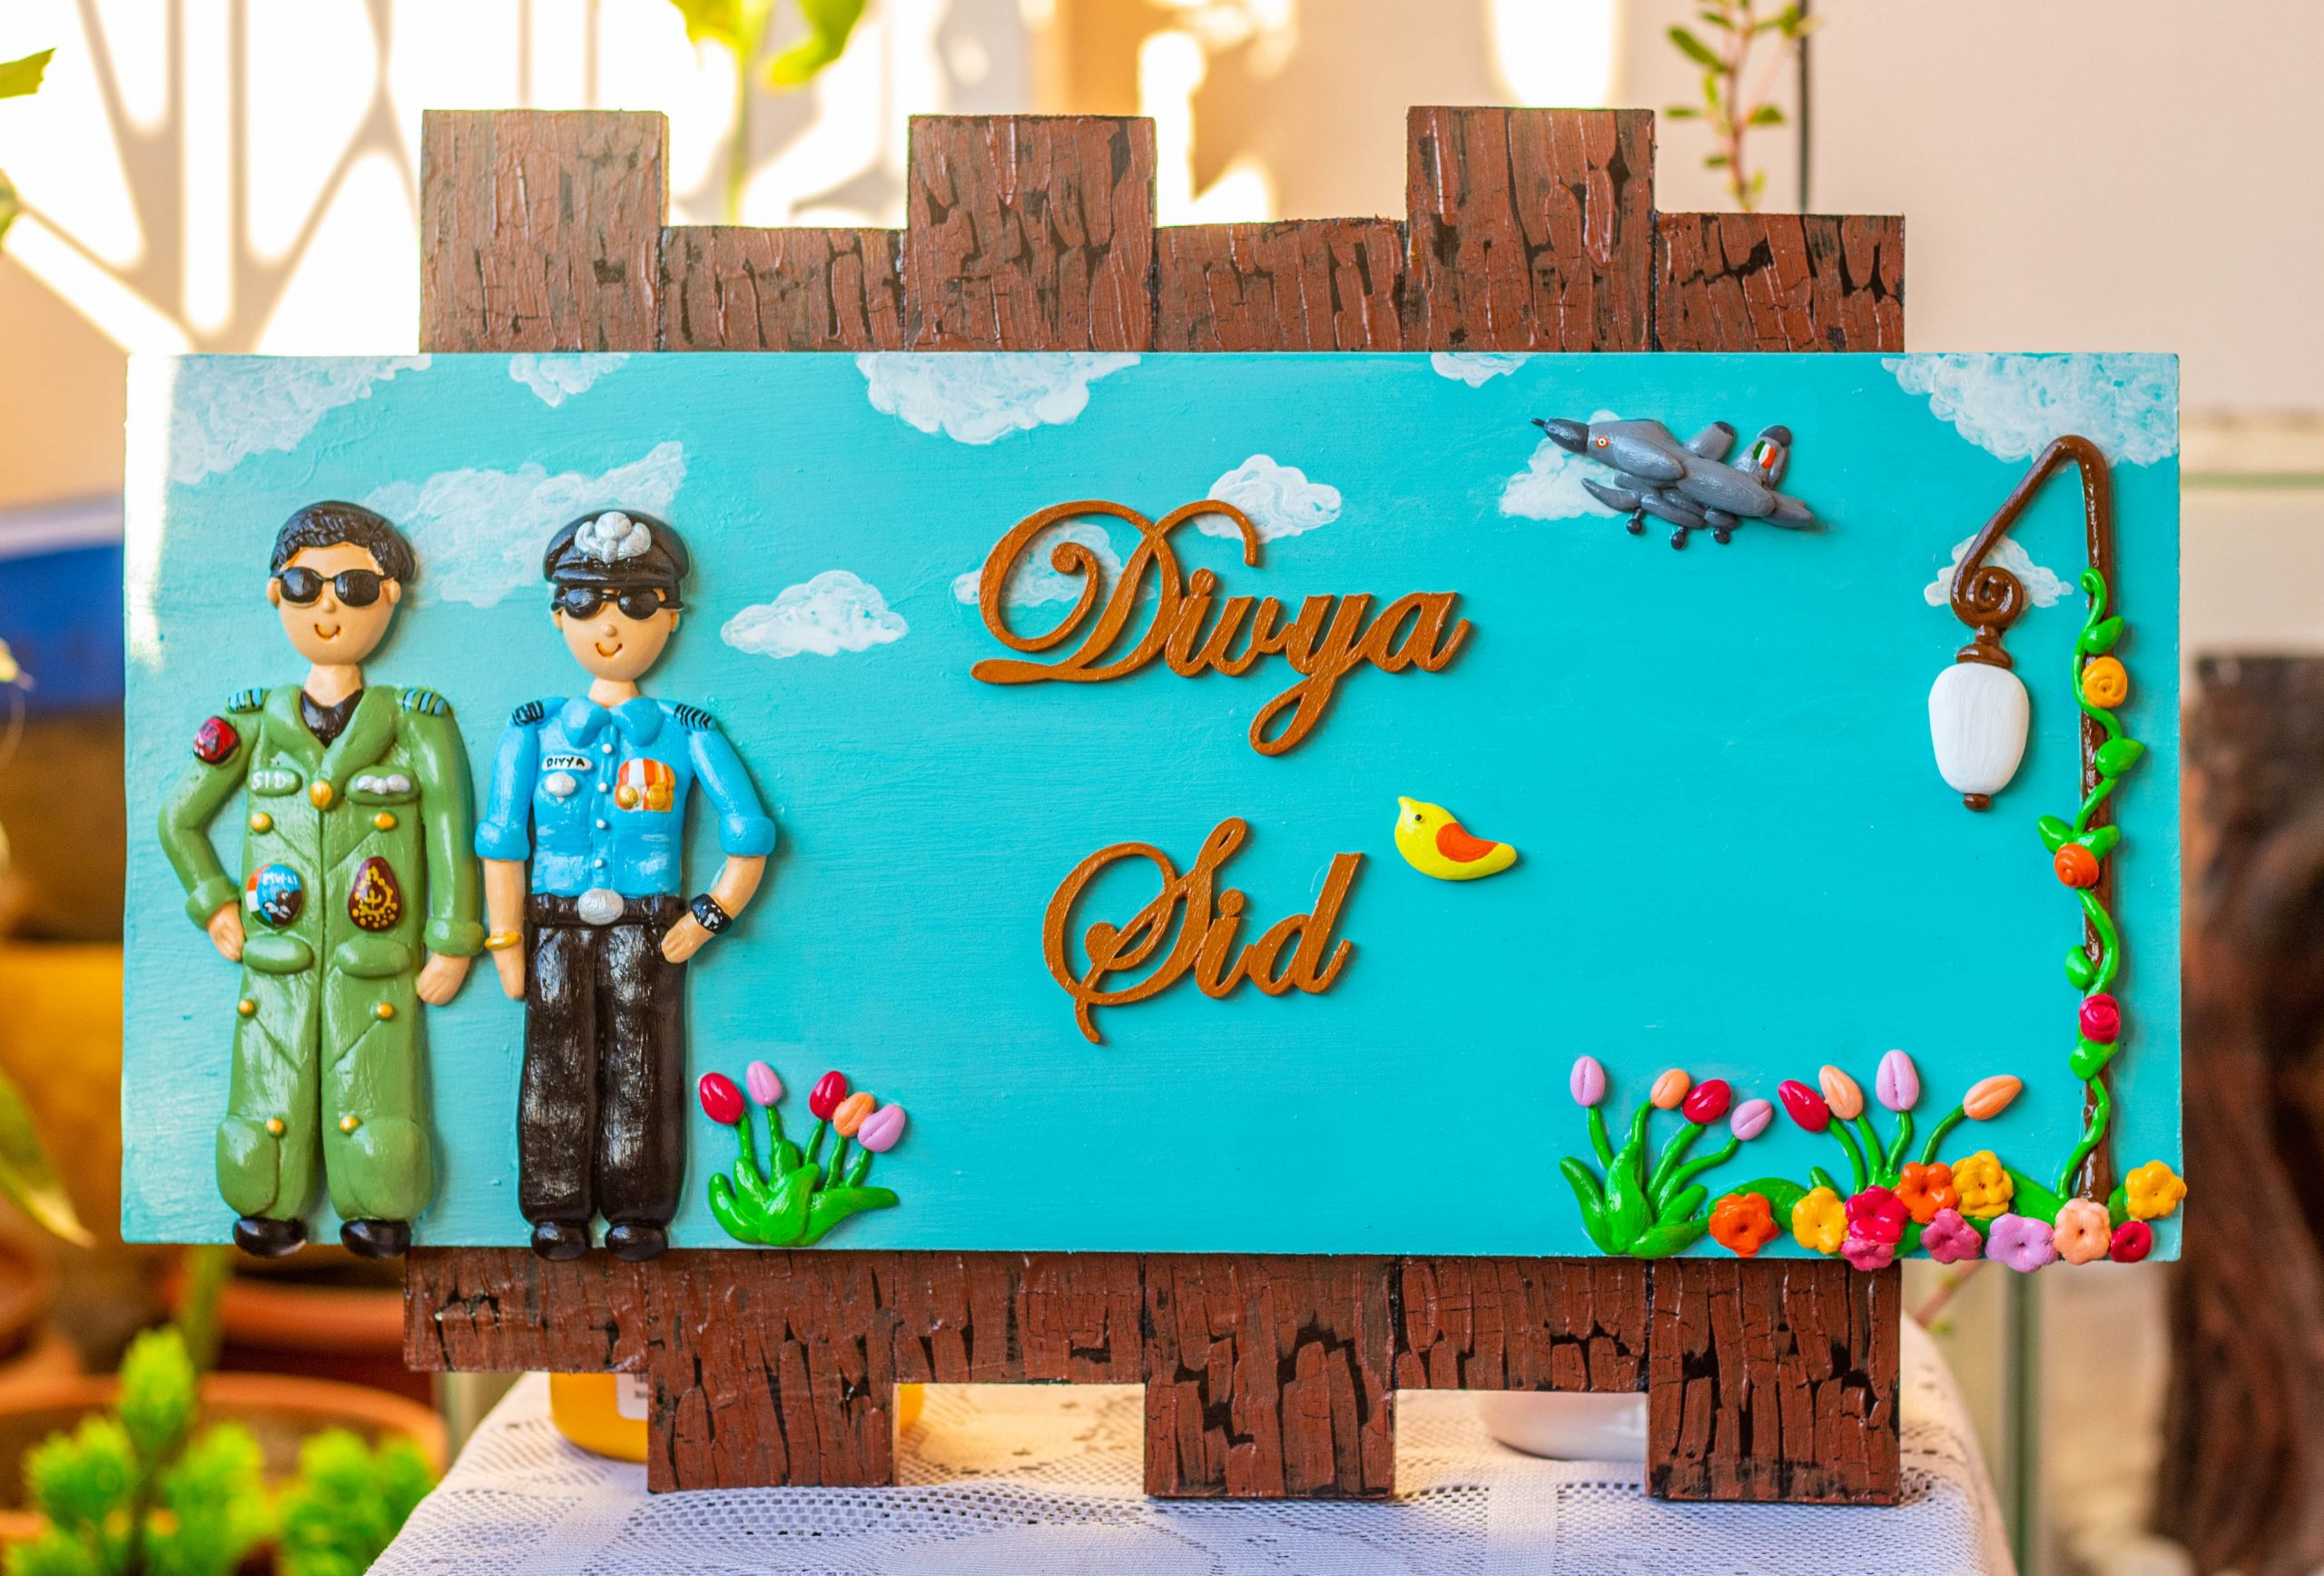 Buy best handmade online name plate designs for home Hitchki Unique Customized Indian Airforce themed nameplate